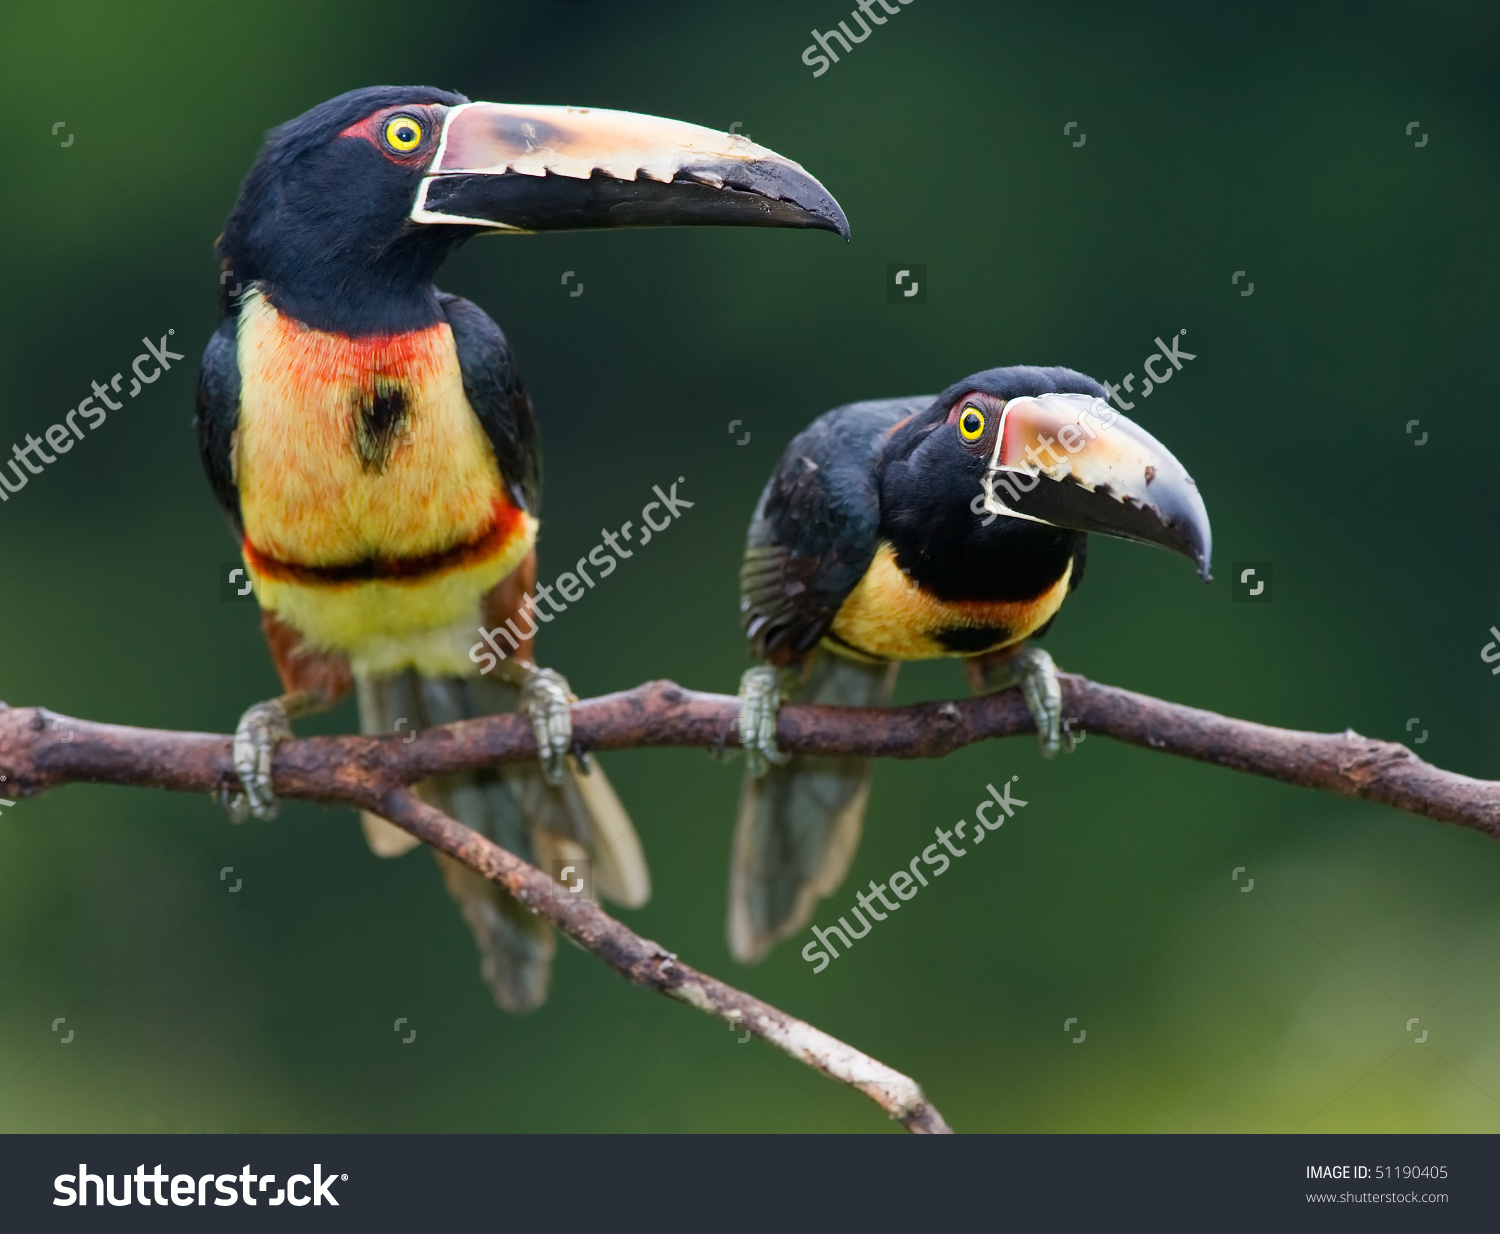 Collared Aracari clipart #3, Download drawings